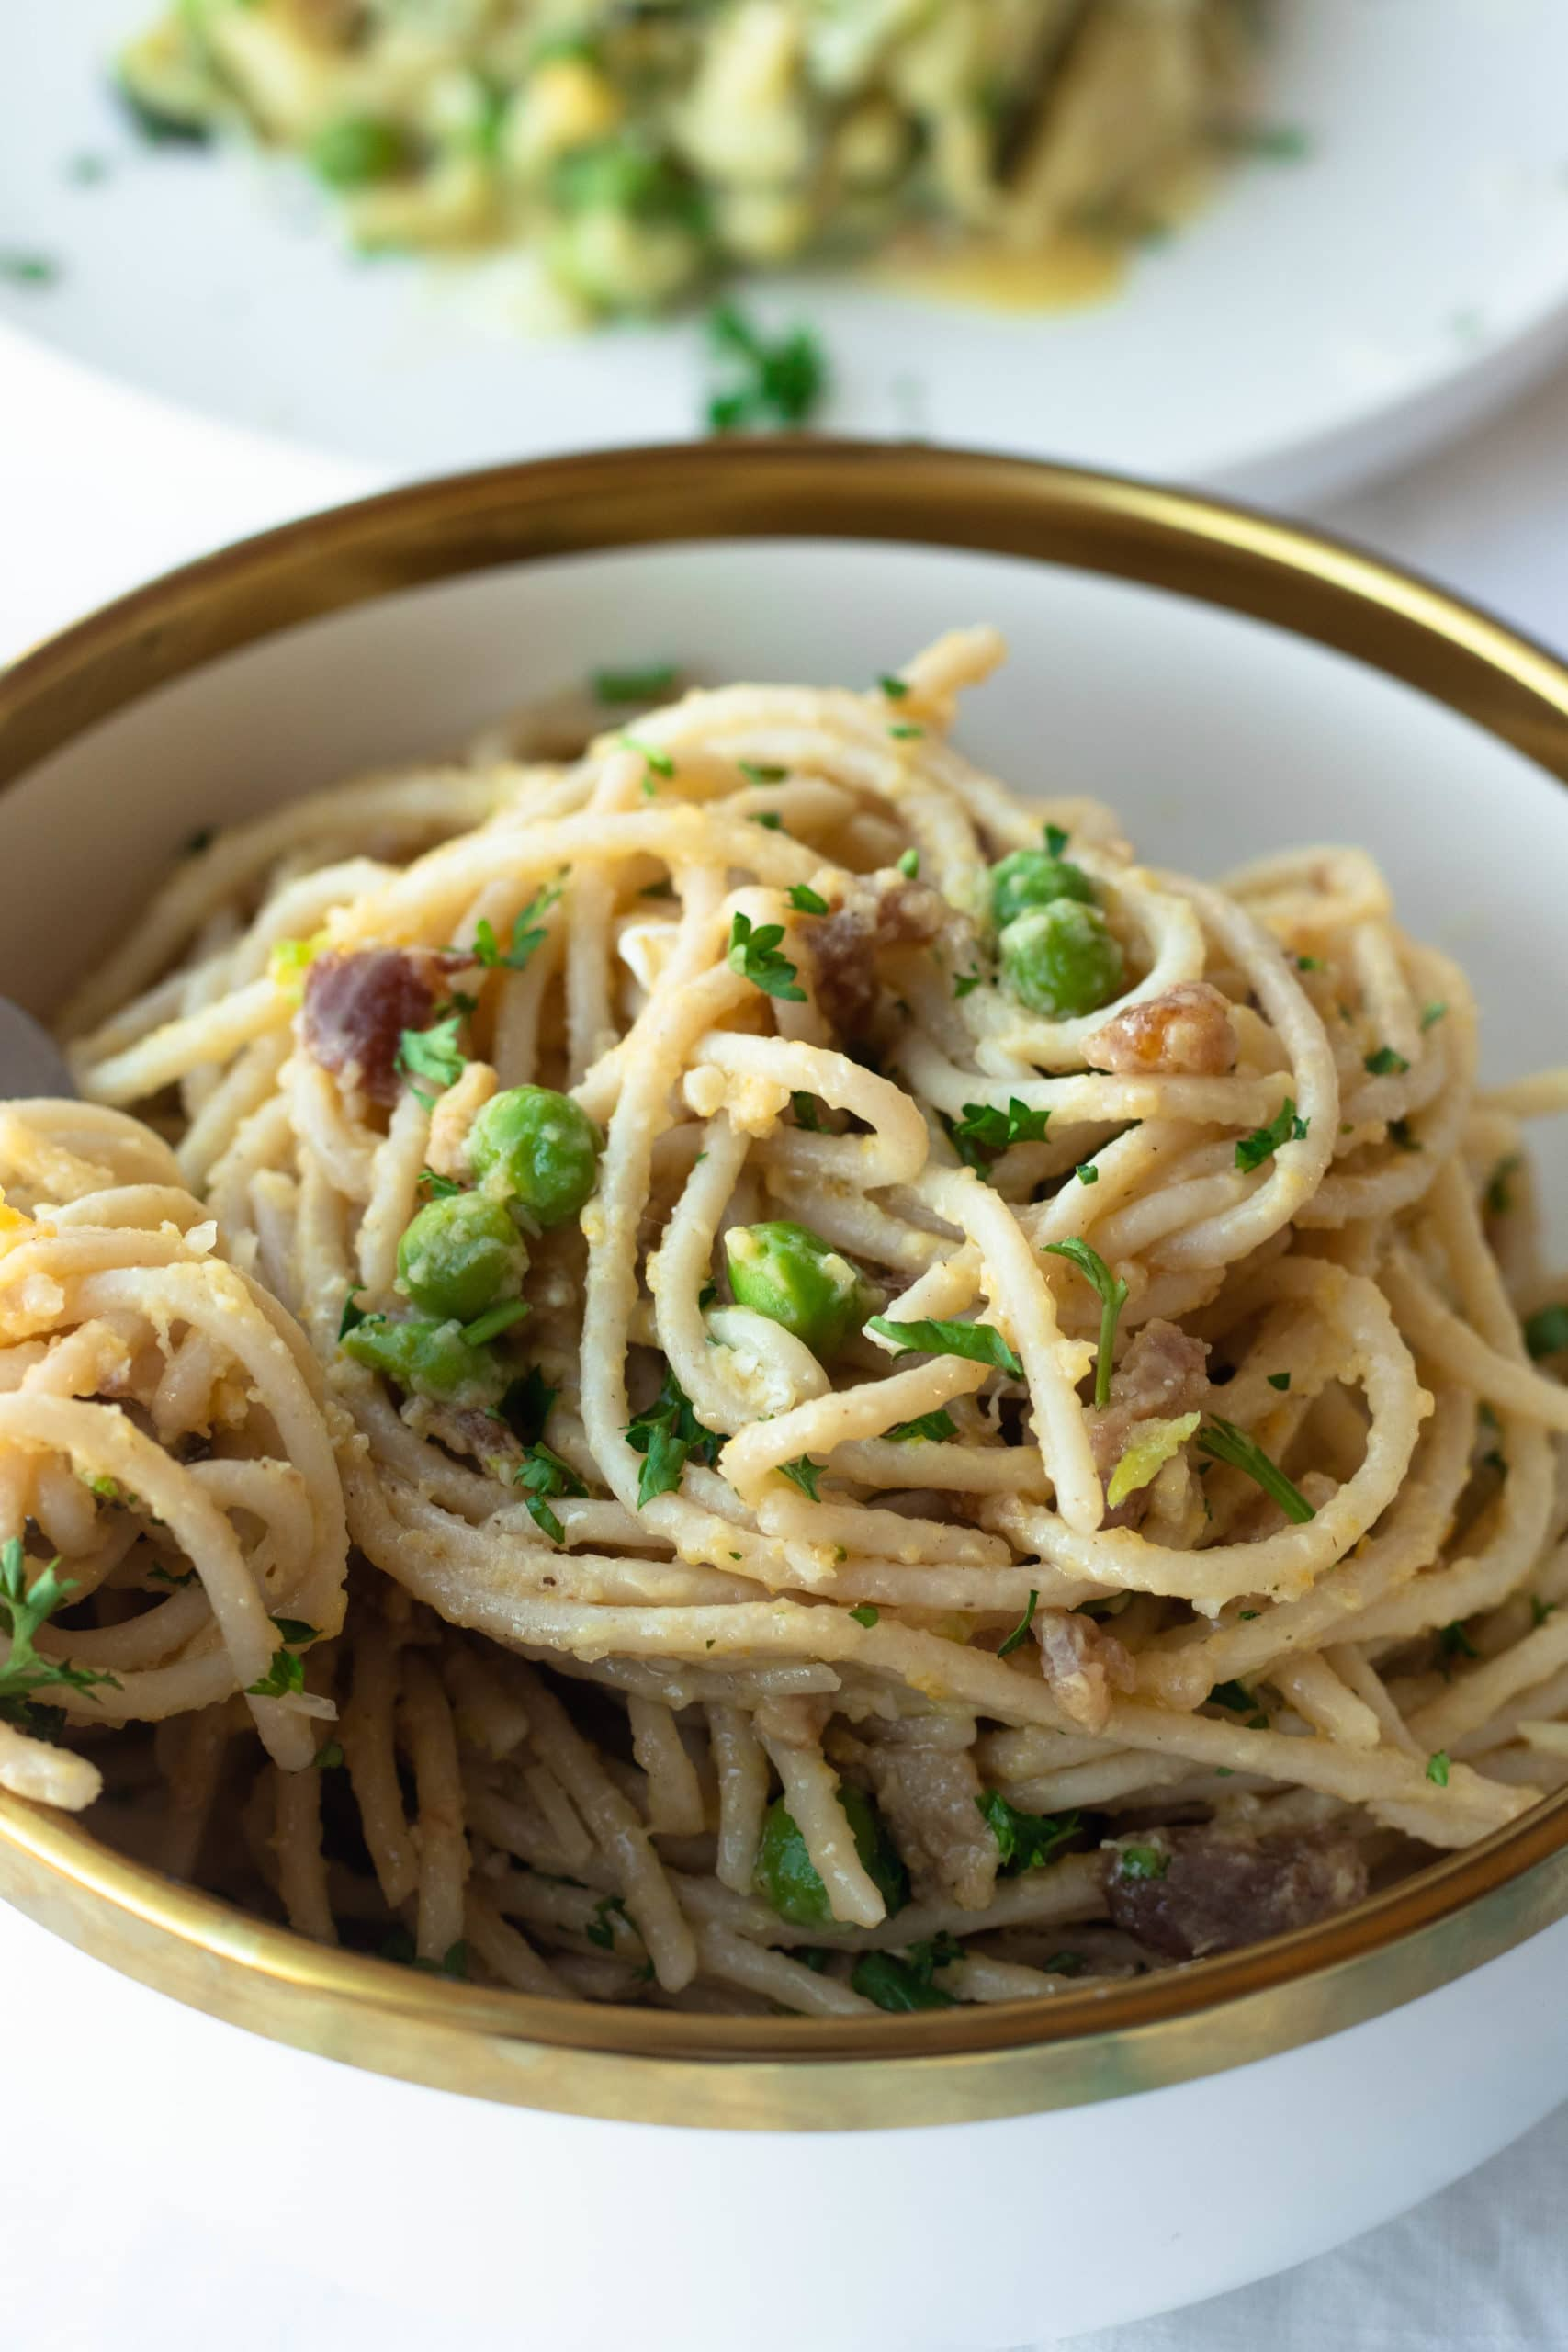 Classic carbonara pasta is transformed into a healthy, gluten free, and low carb pasta recipe. Parmesan cheese, peas, bacon, and browned butter adorn your choice of low carb noodles or zucchini noodles. This decadent keto carbonara will make you forget you're eating healthy!